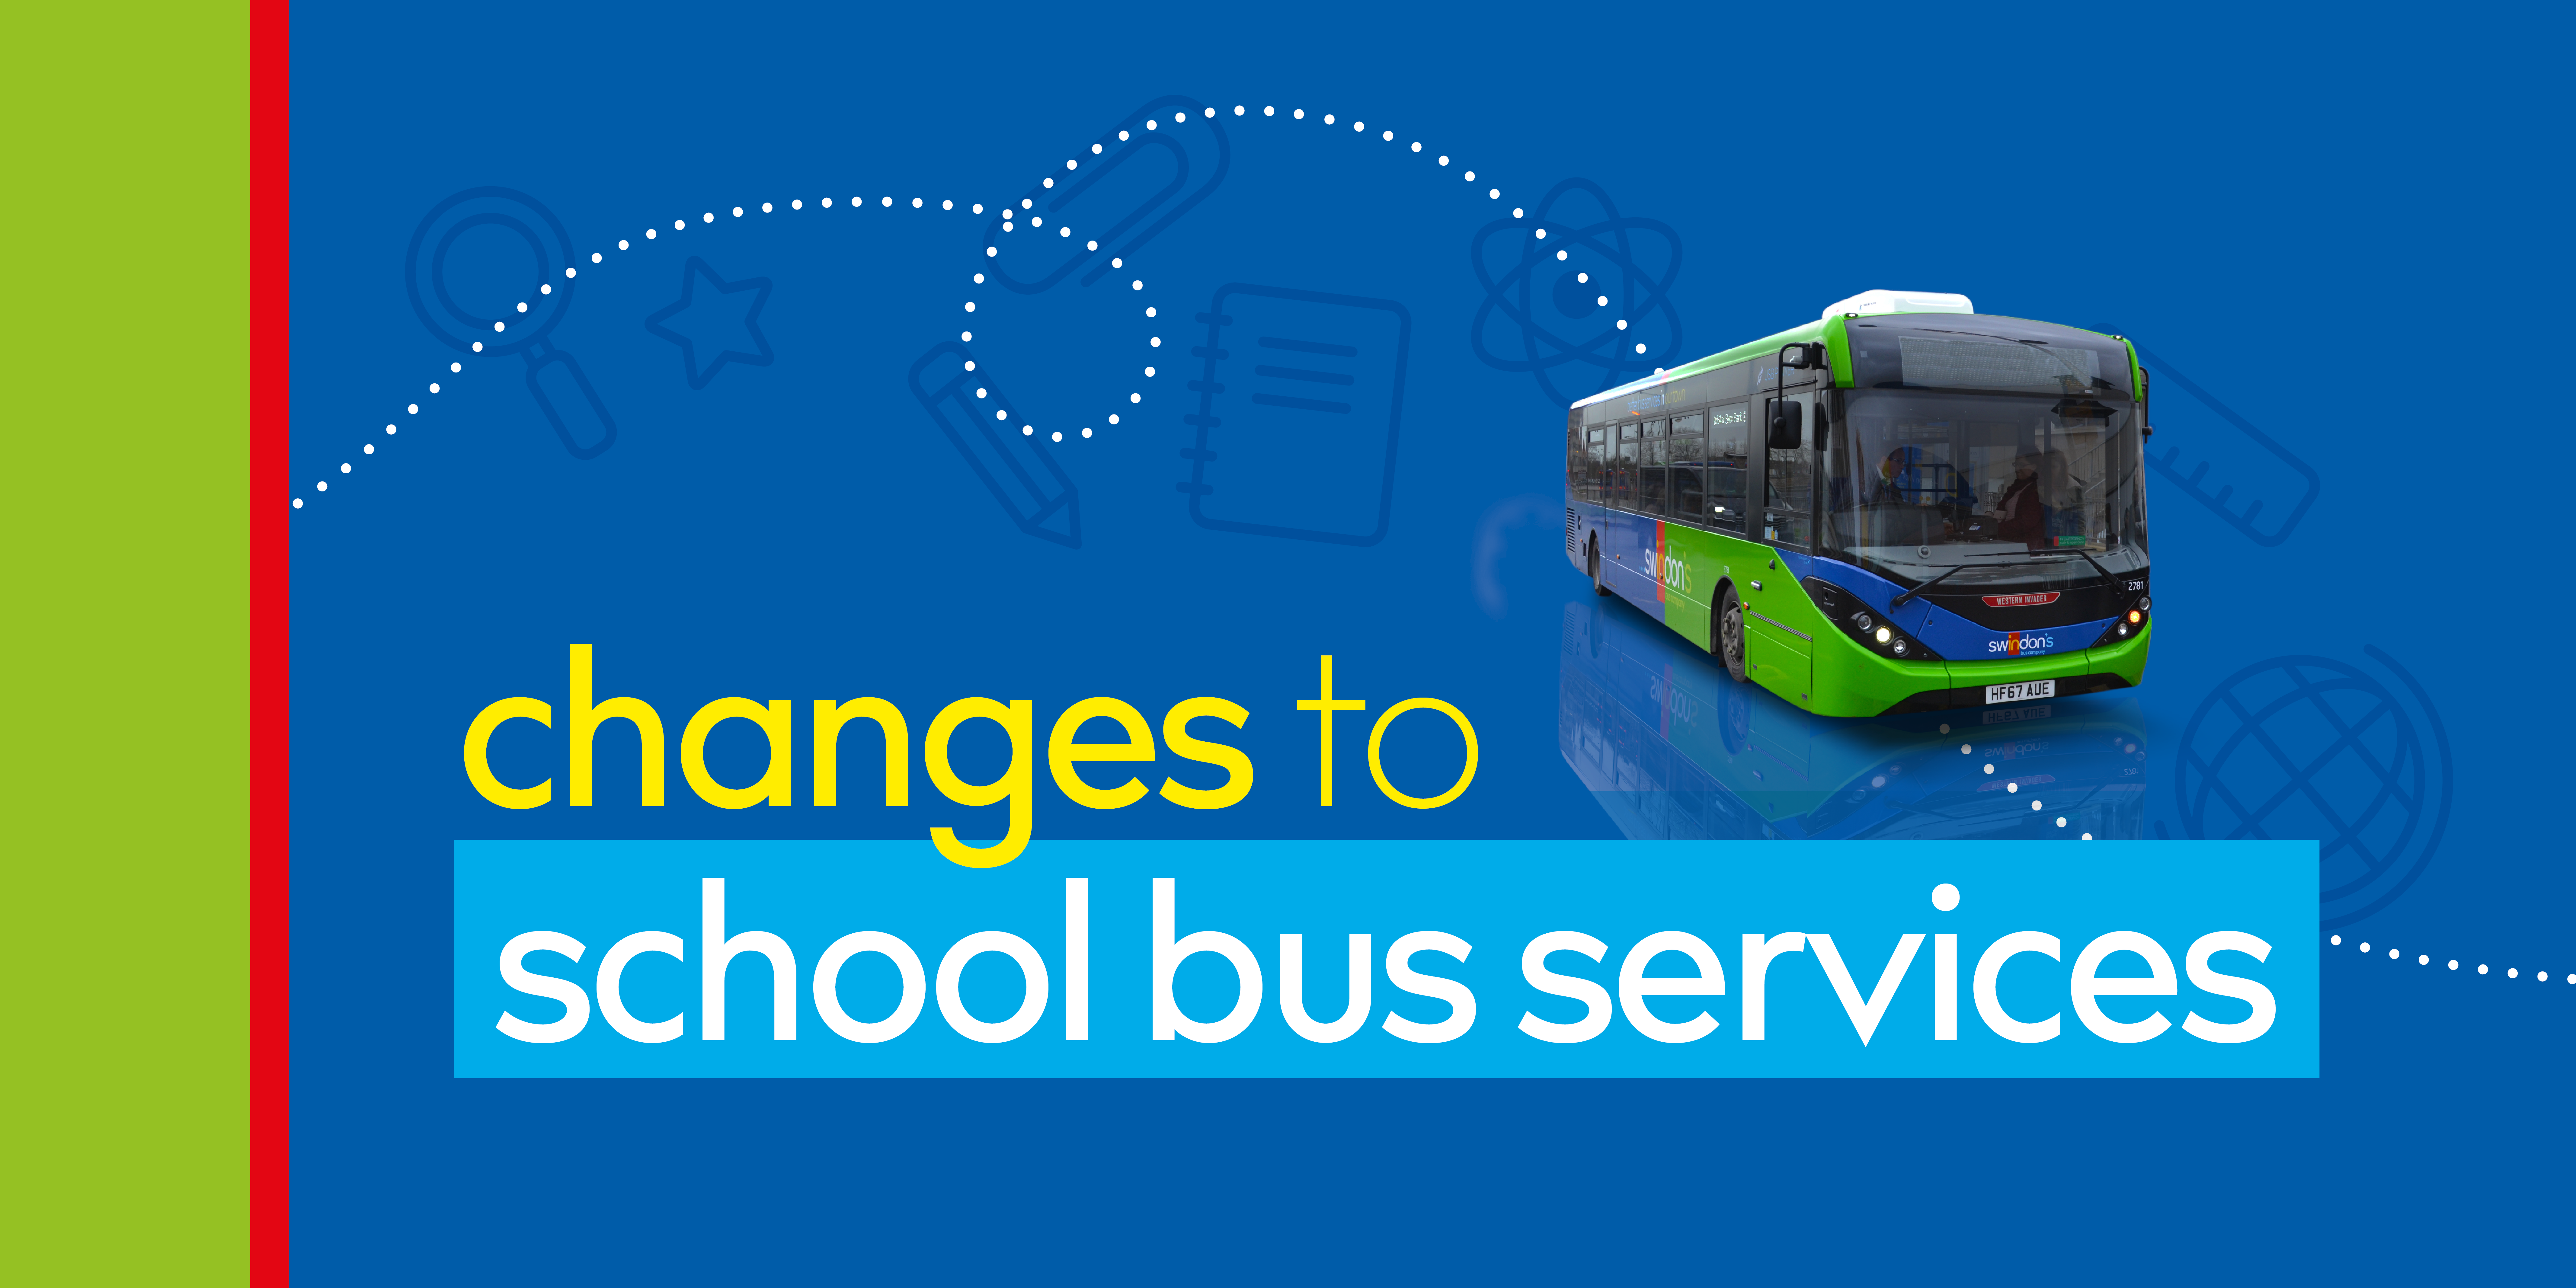 A promotional image for changes to school bus services